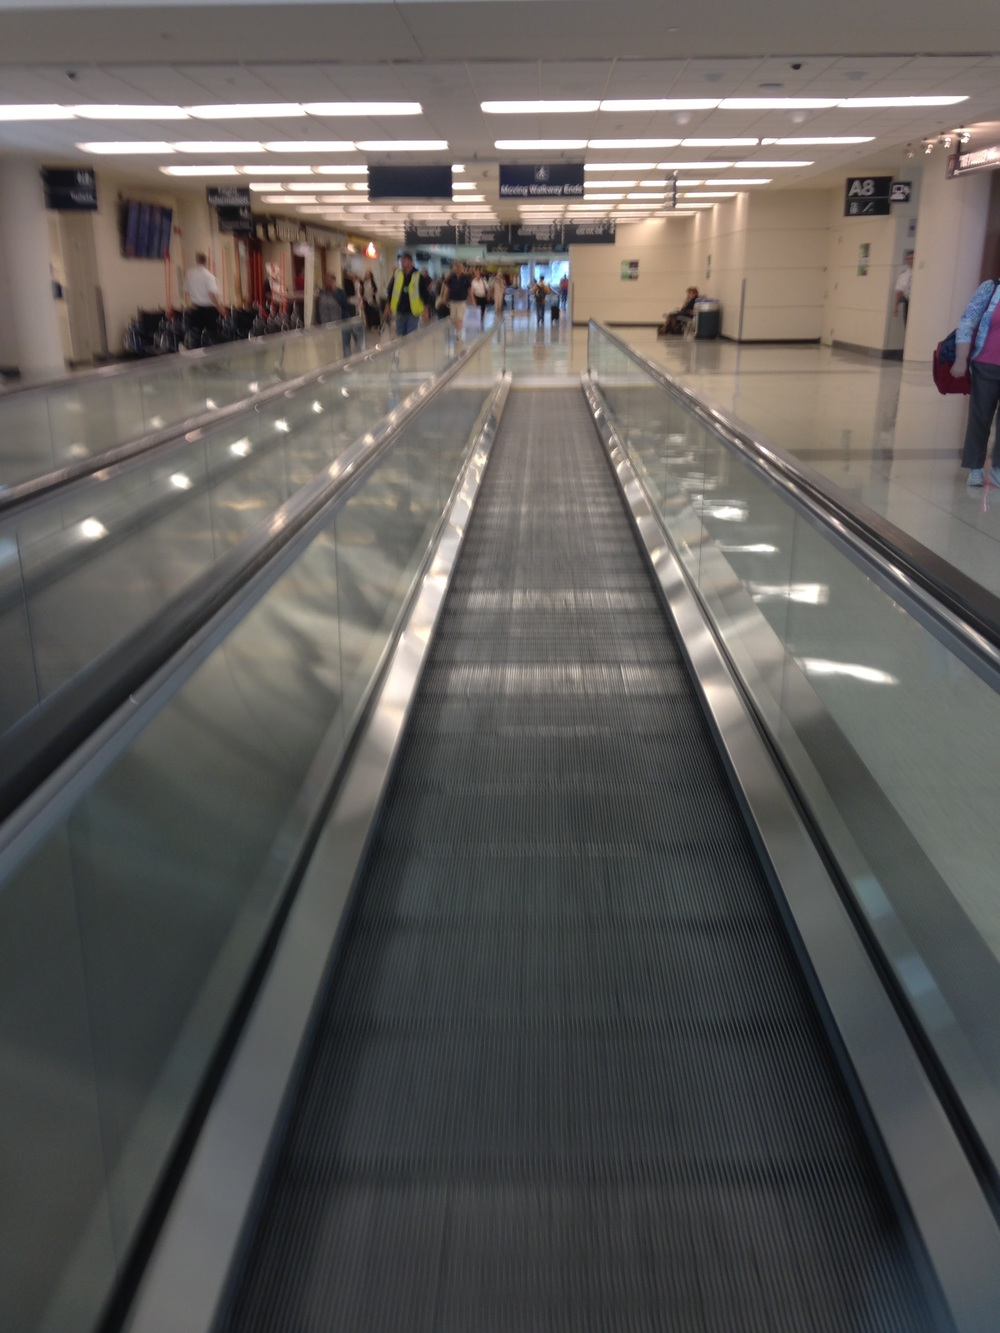 Airport-Moving-Sidewalks.jpg